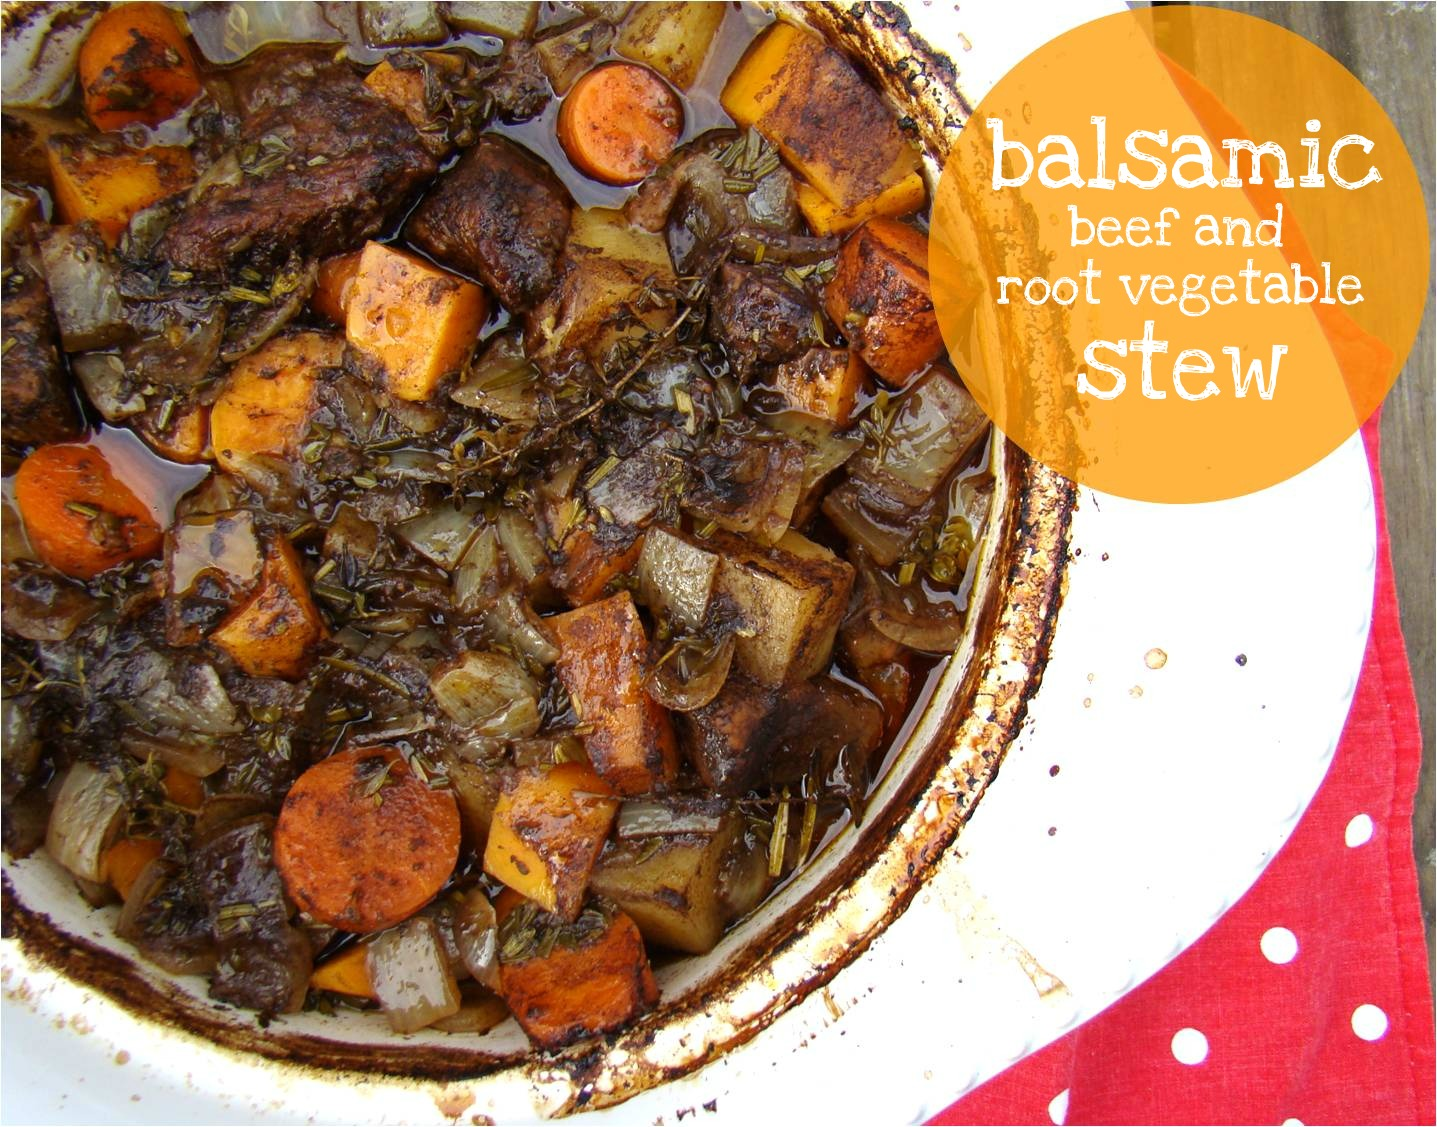 Family Feedbag: Balsamic beef and root vegetable stew